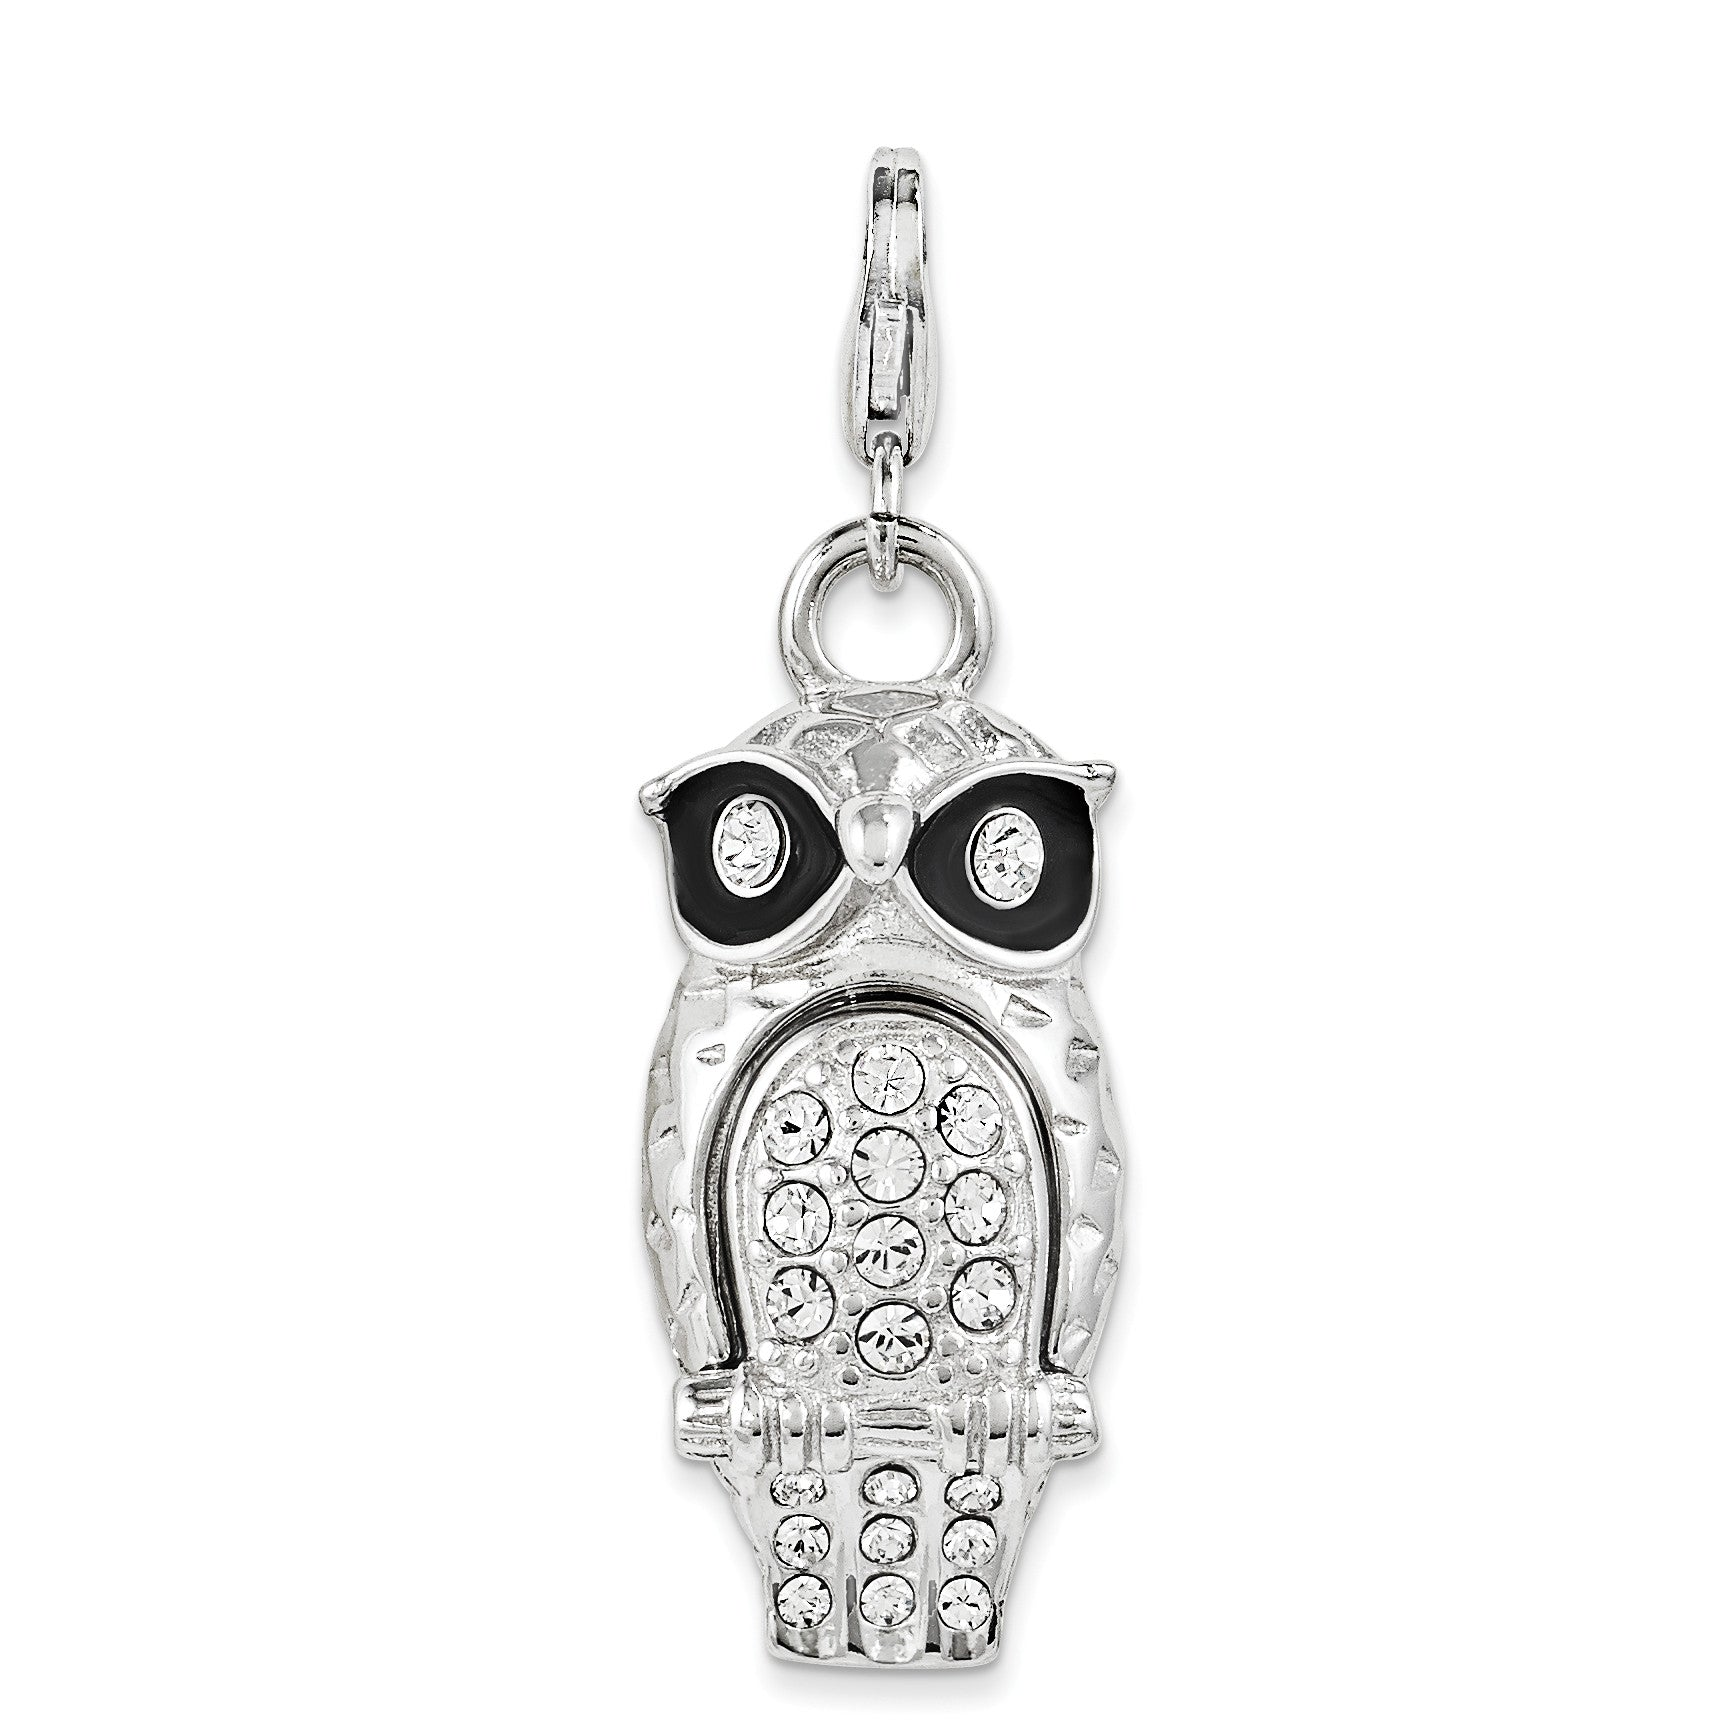 SterlingSilver Enamel Swarovski Element Owl w/Lobster Clasp Charm QCC1012 - shirin-diamonds